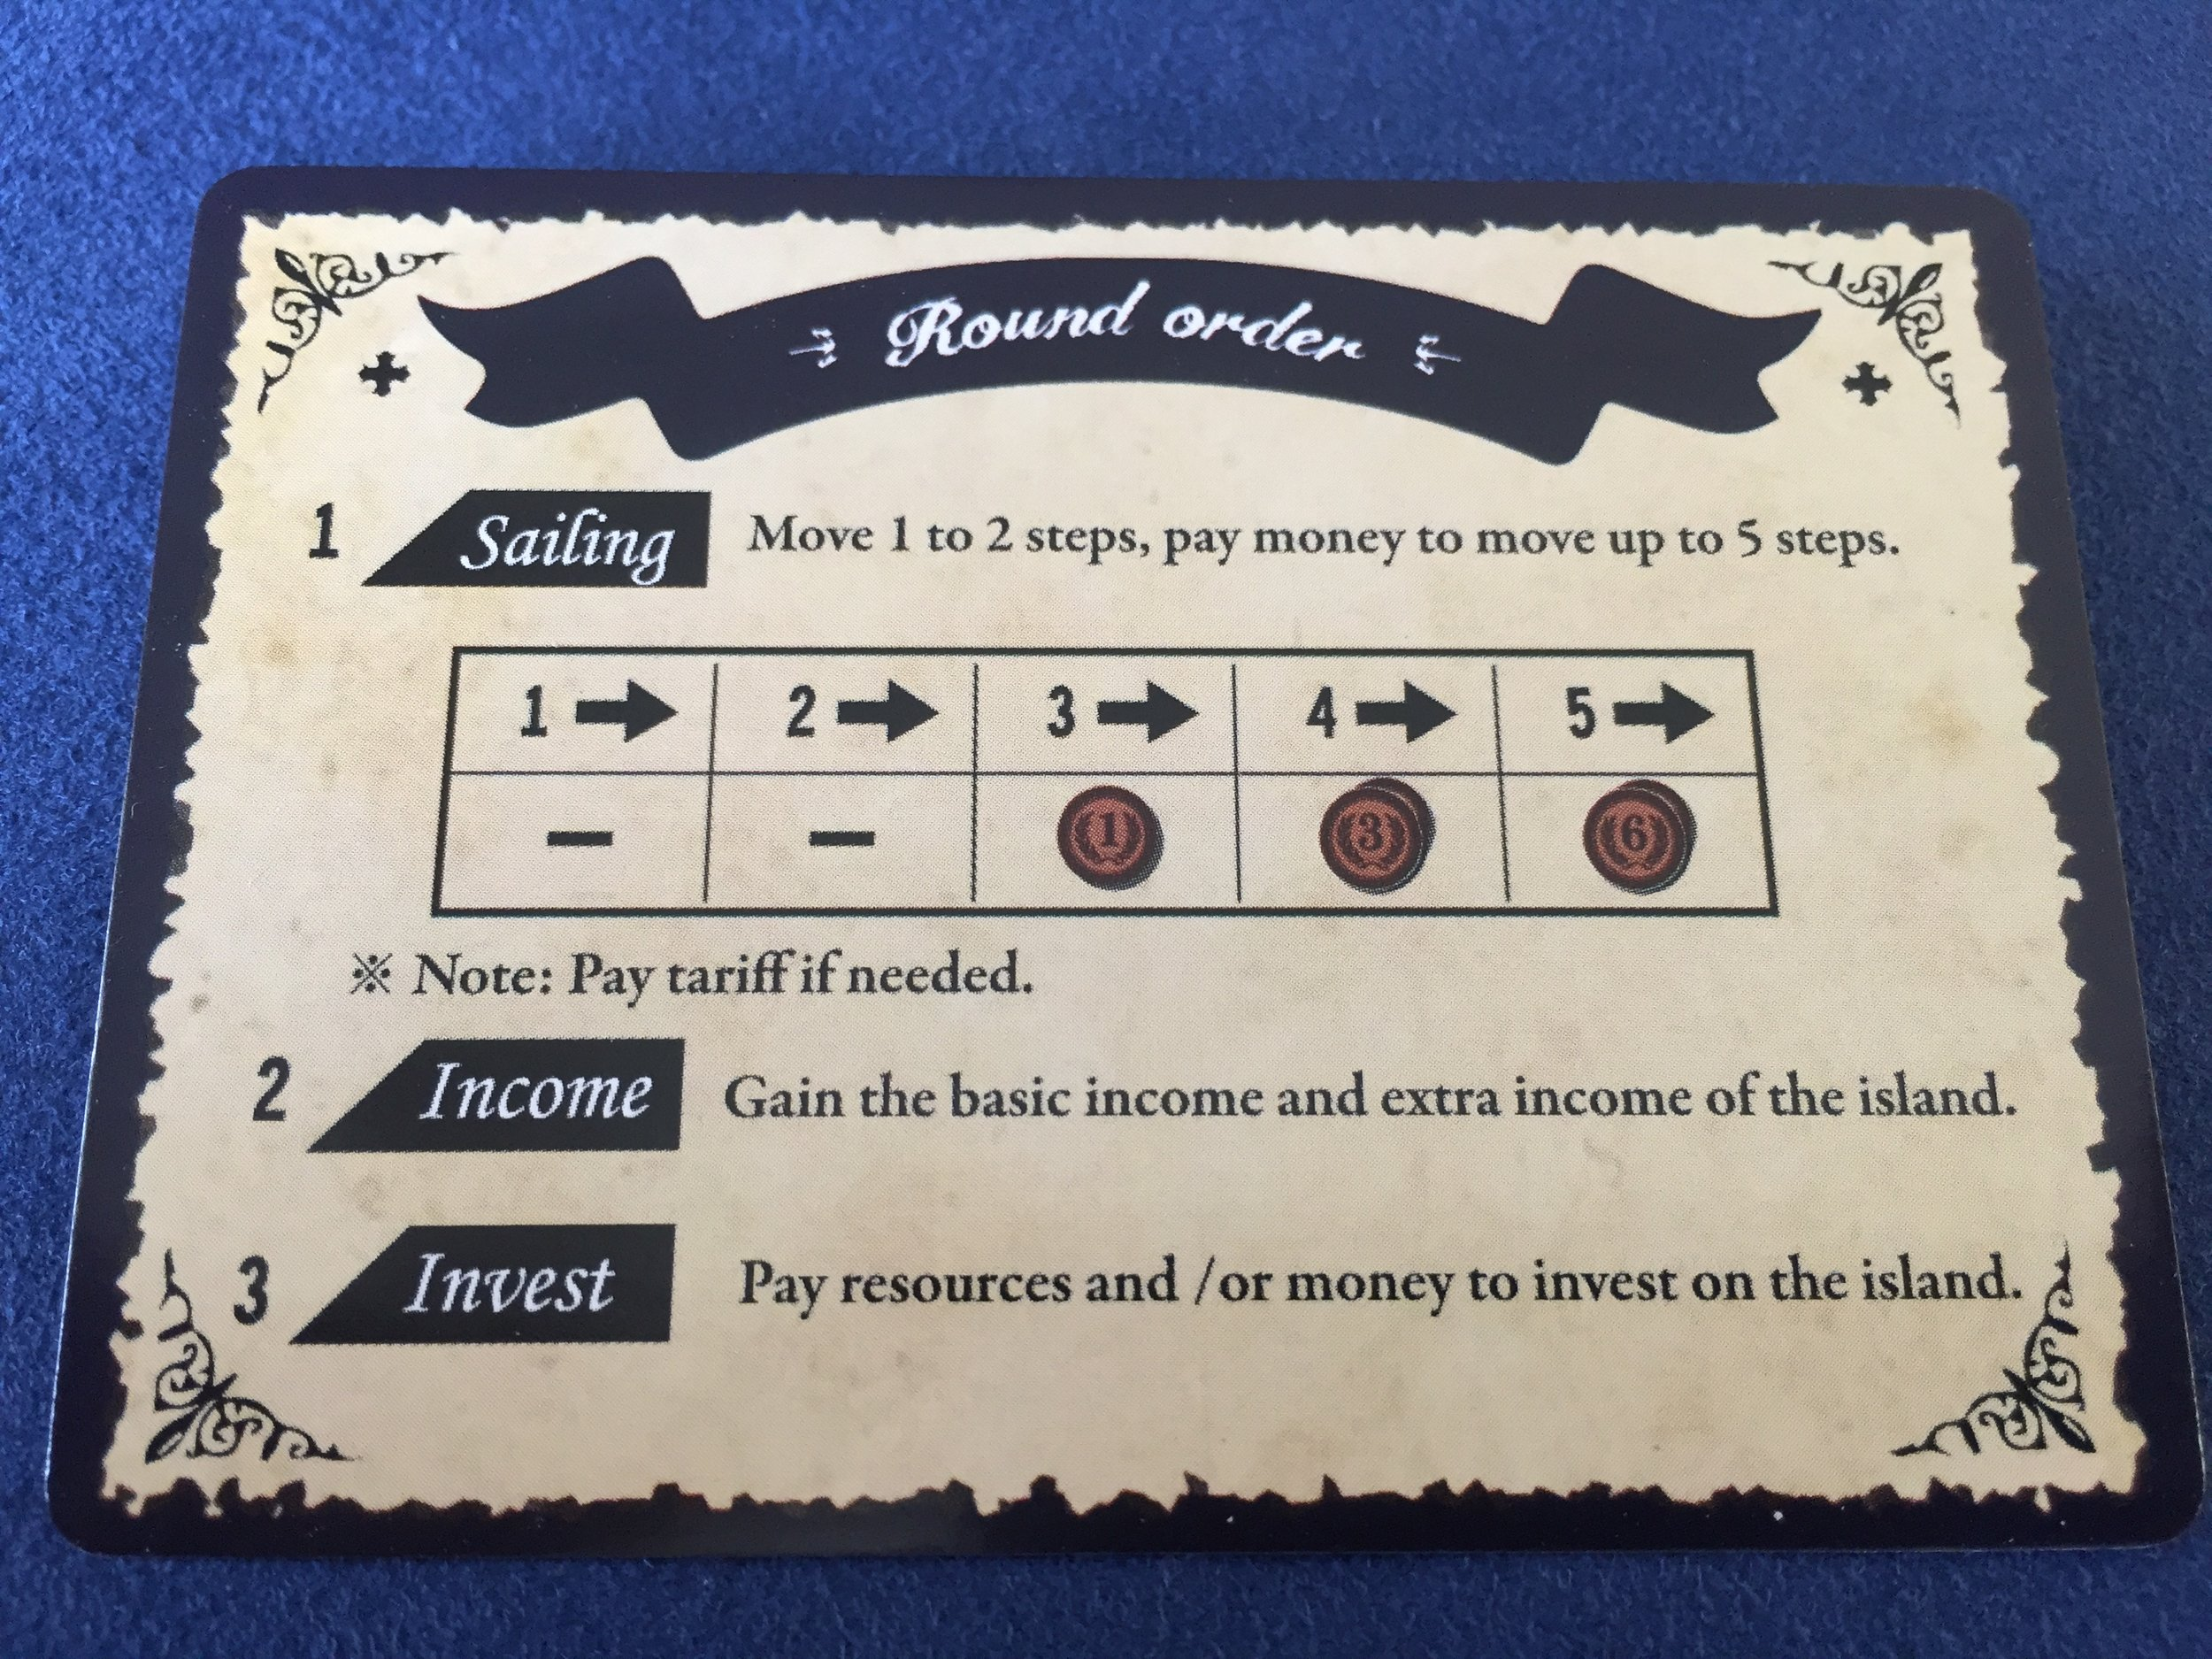 Player Aid Card. Only one was included, but one is all you need for a game this simple.